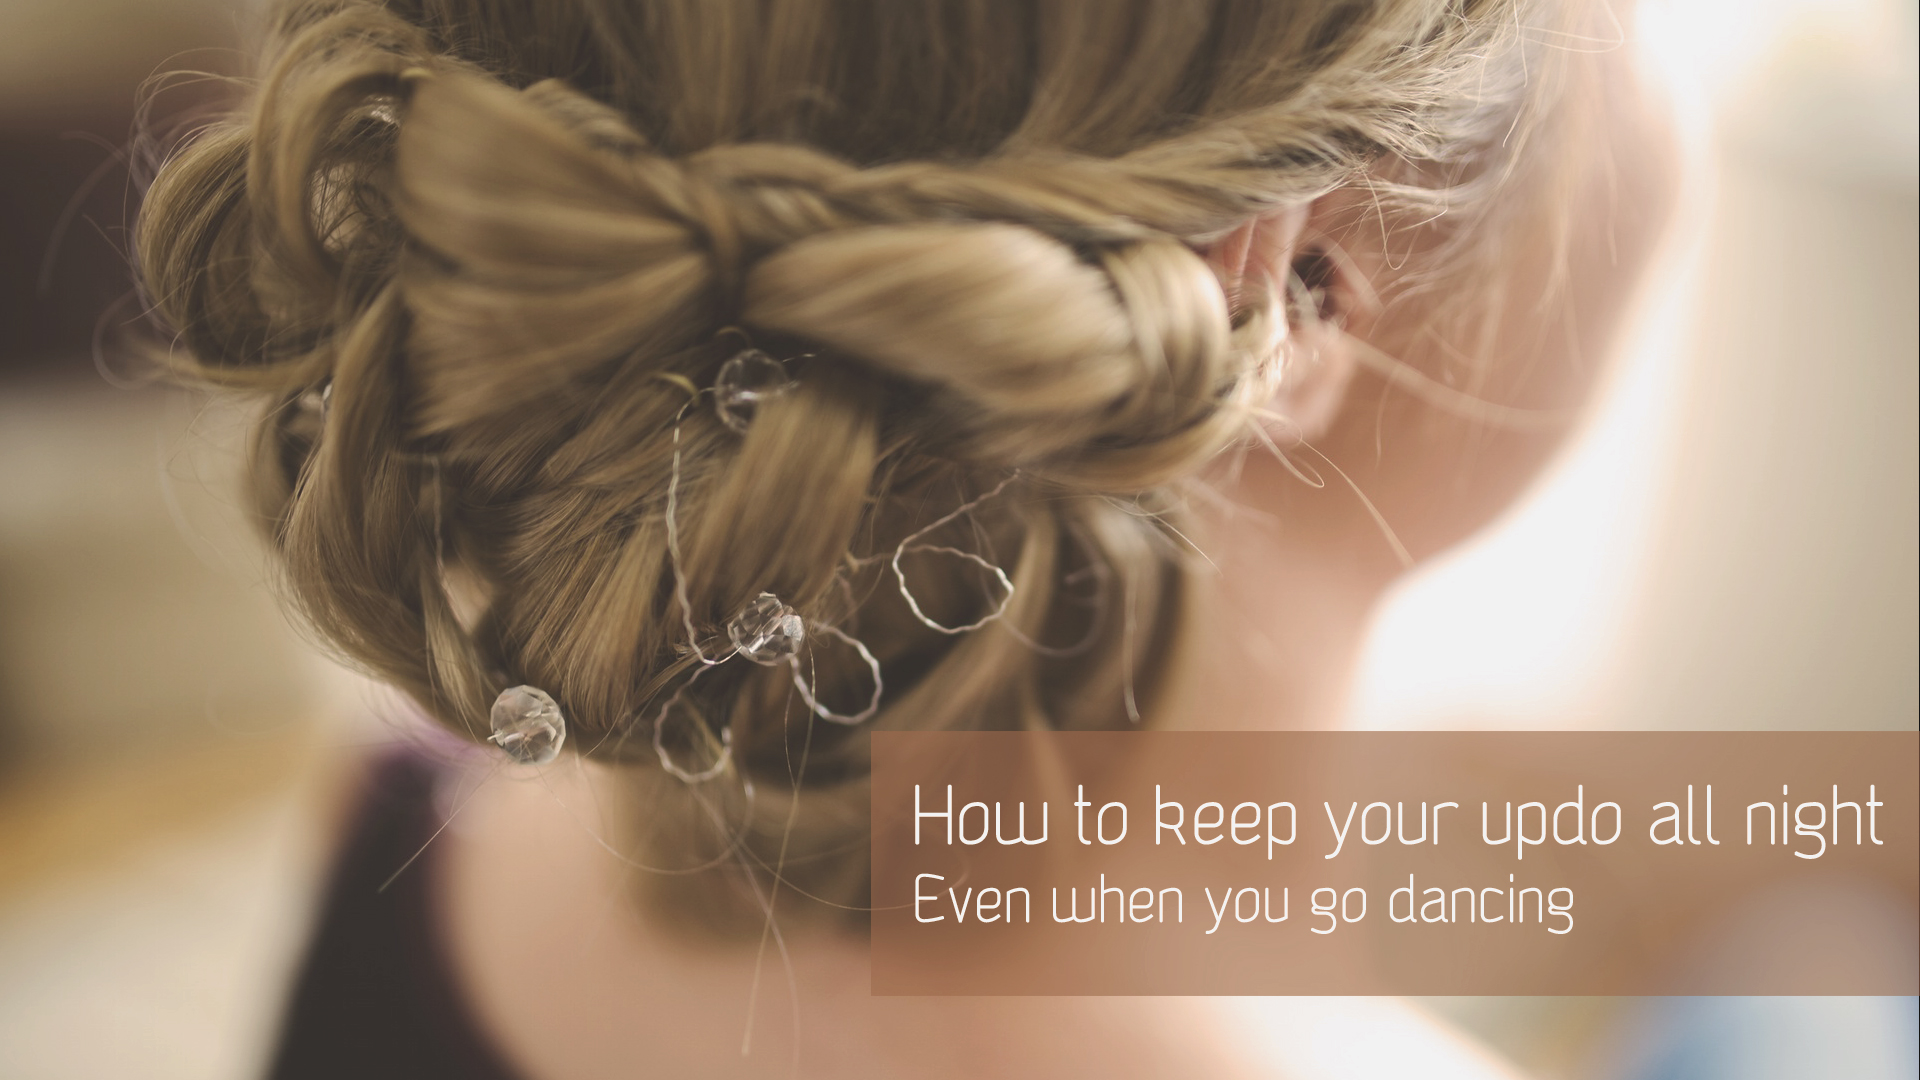 Christmas party: How to keep your updo all night